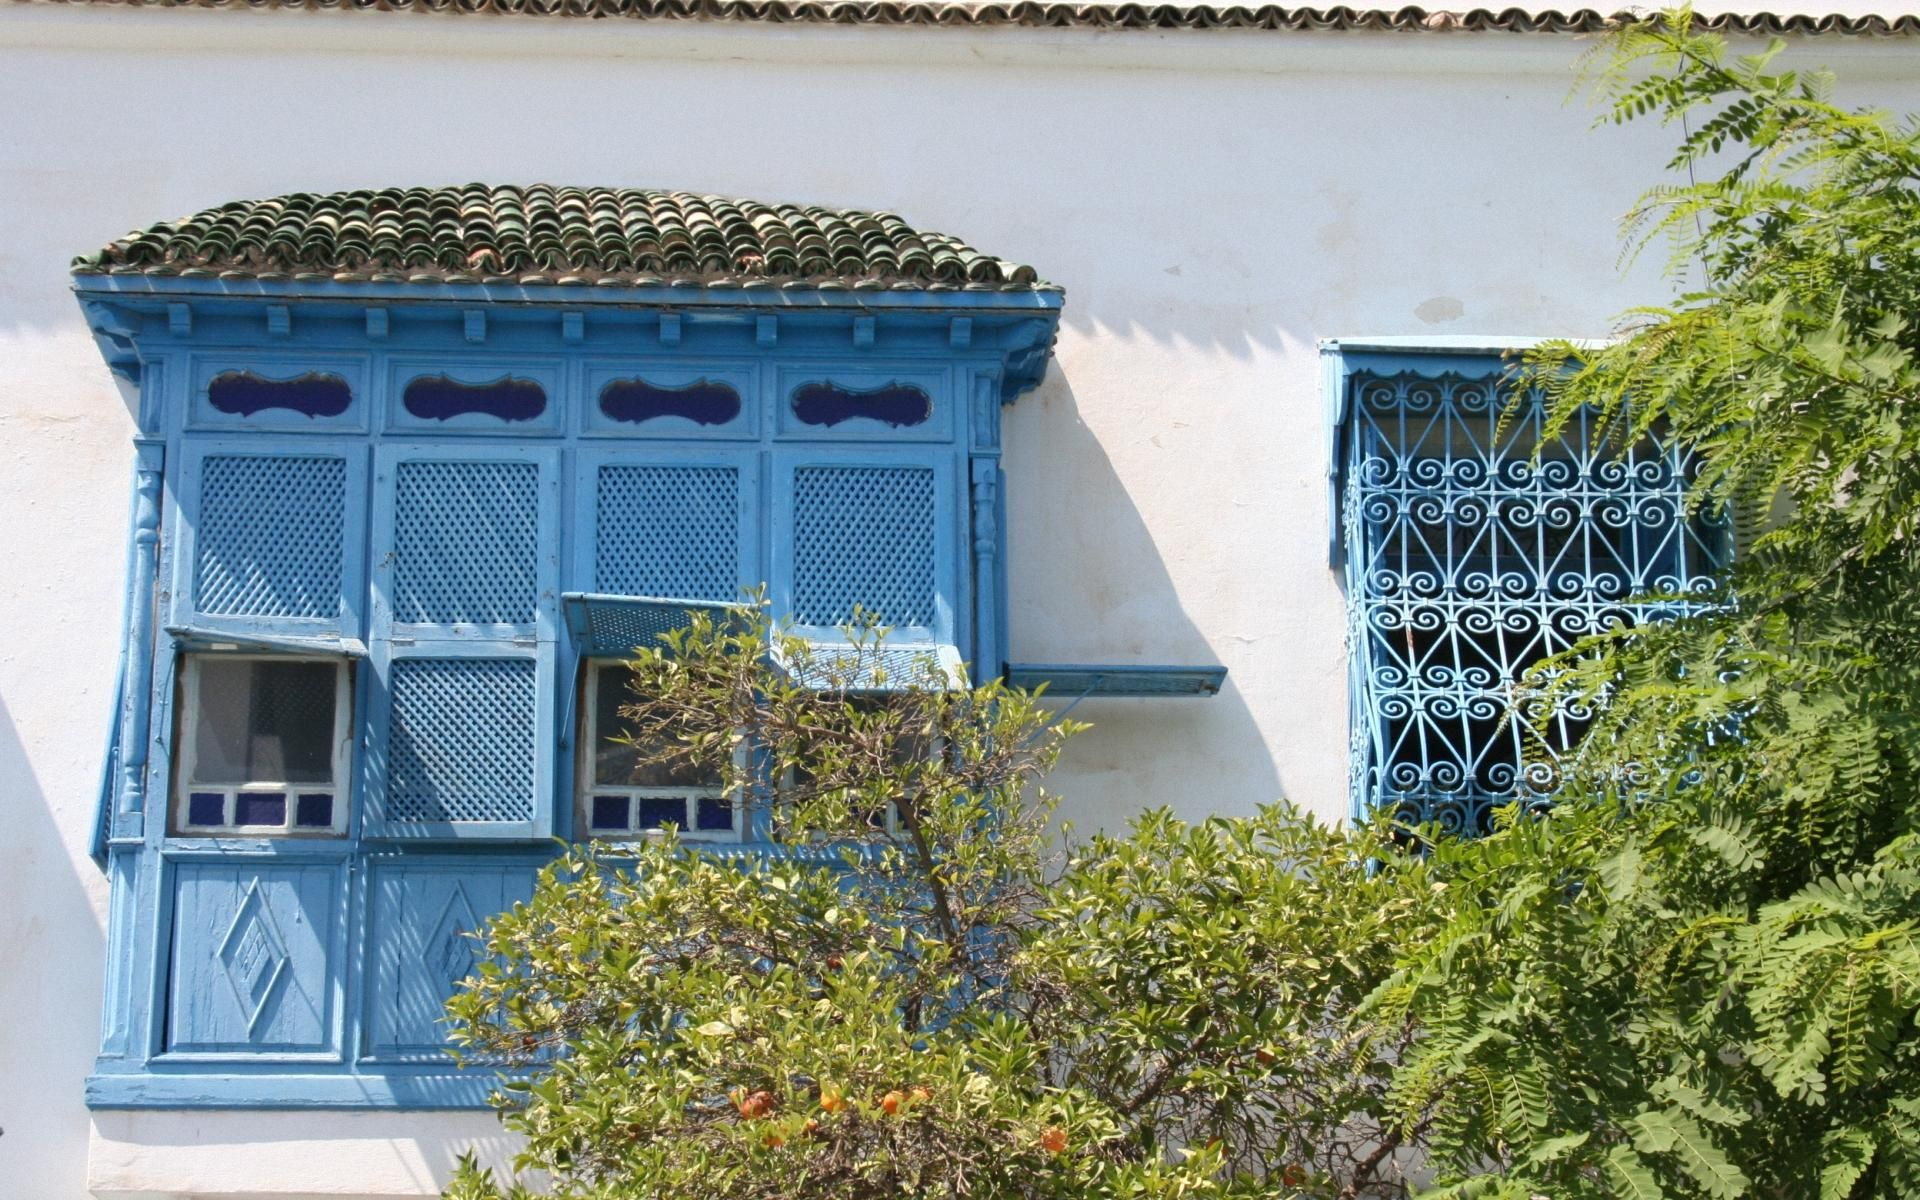 nice a tunisian house window wallpaper Check more at http://www.finewallpapers.eu/pin/1393/